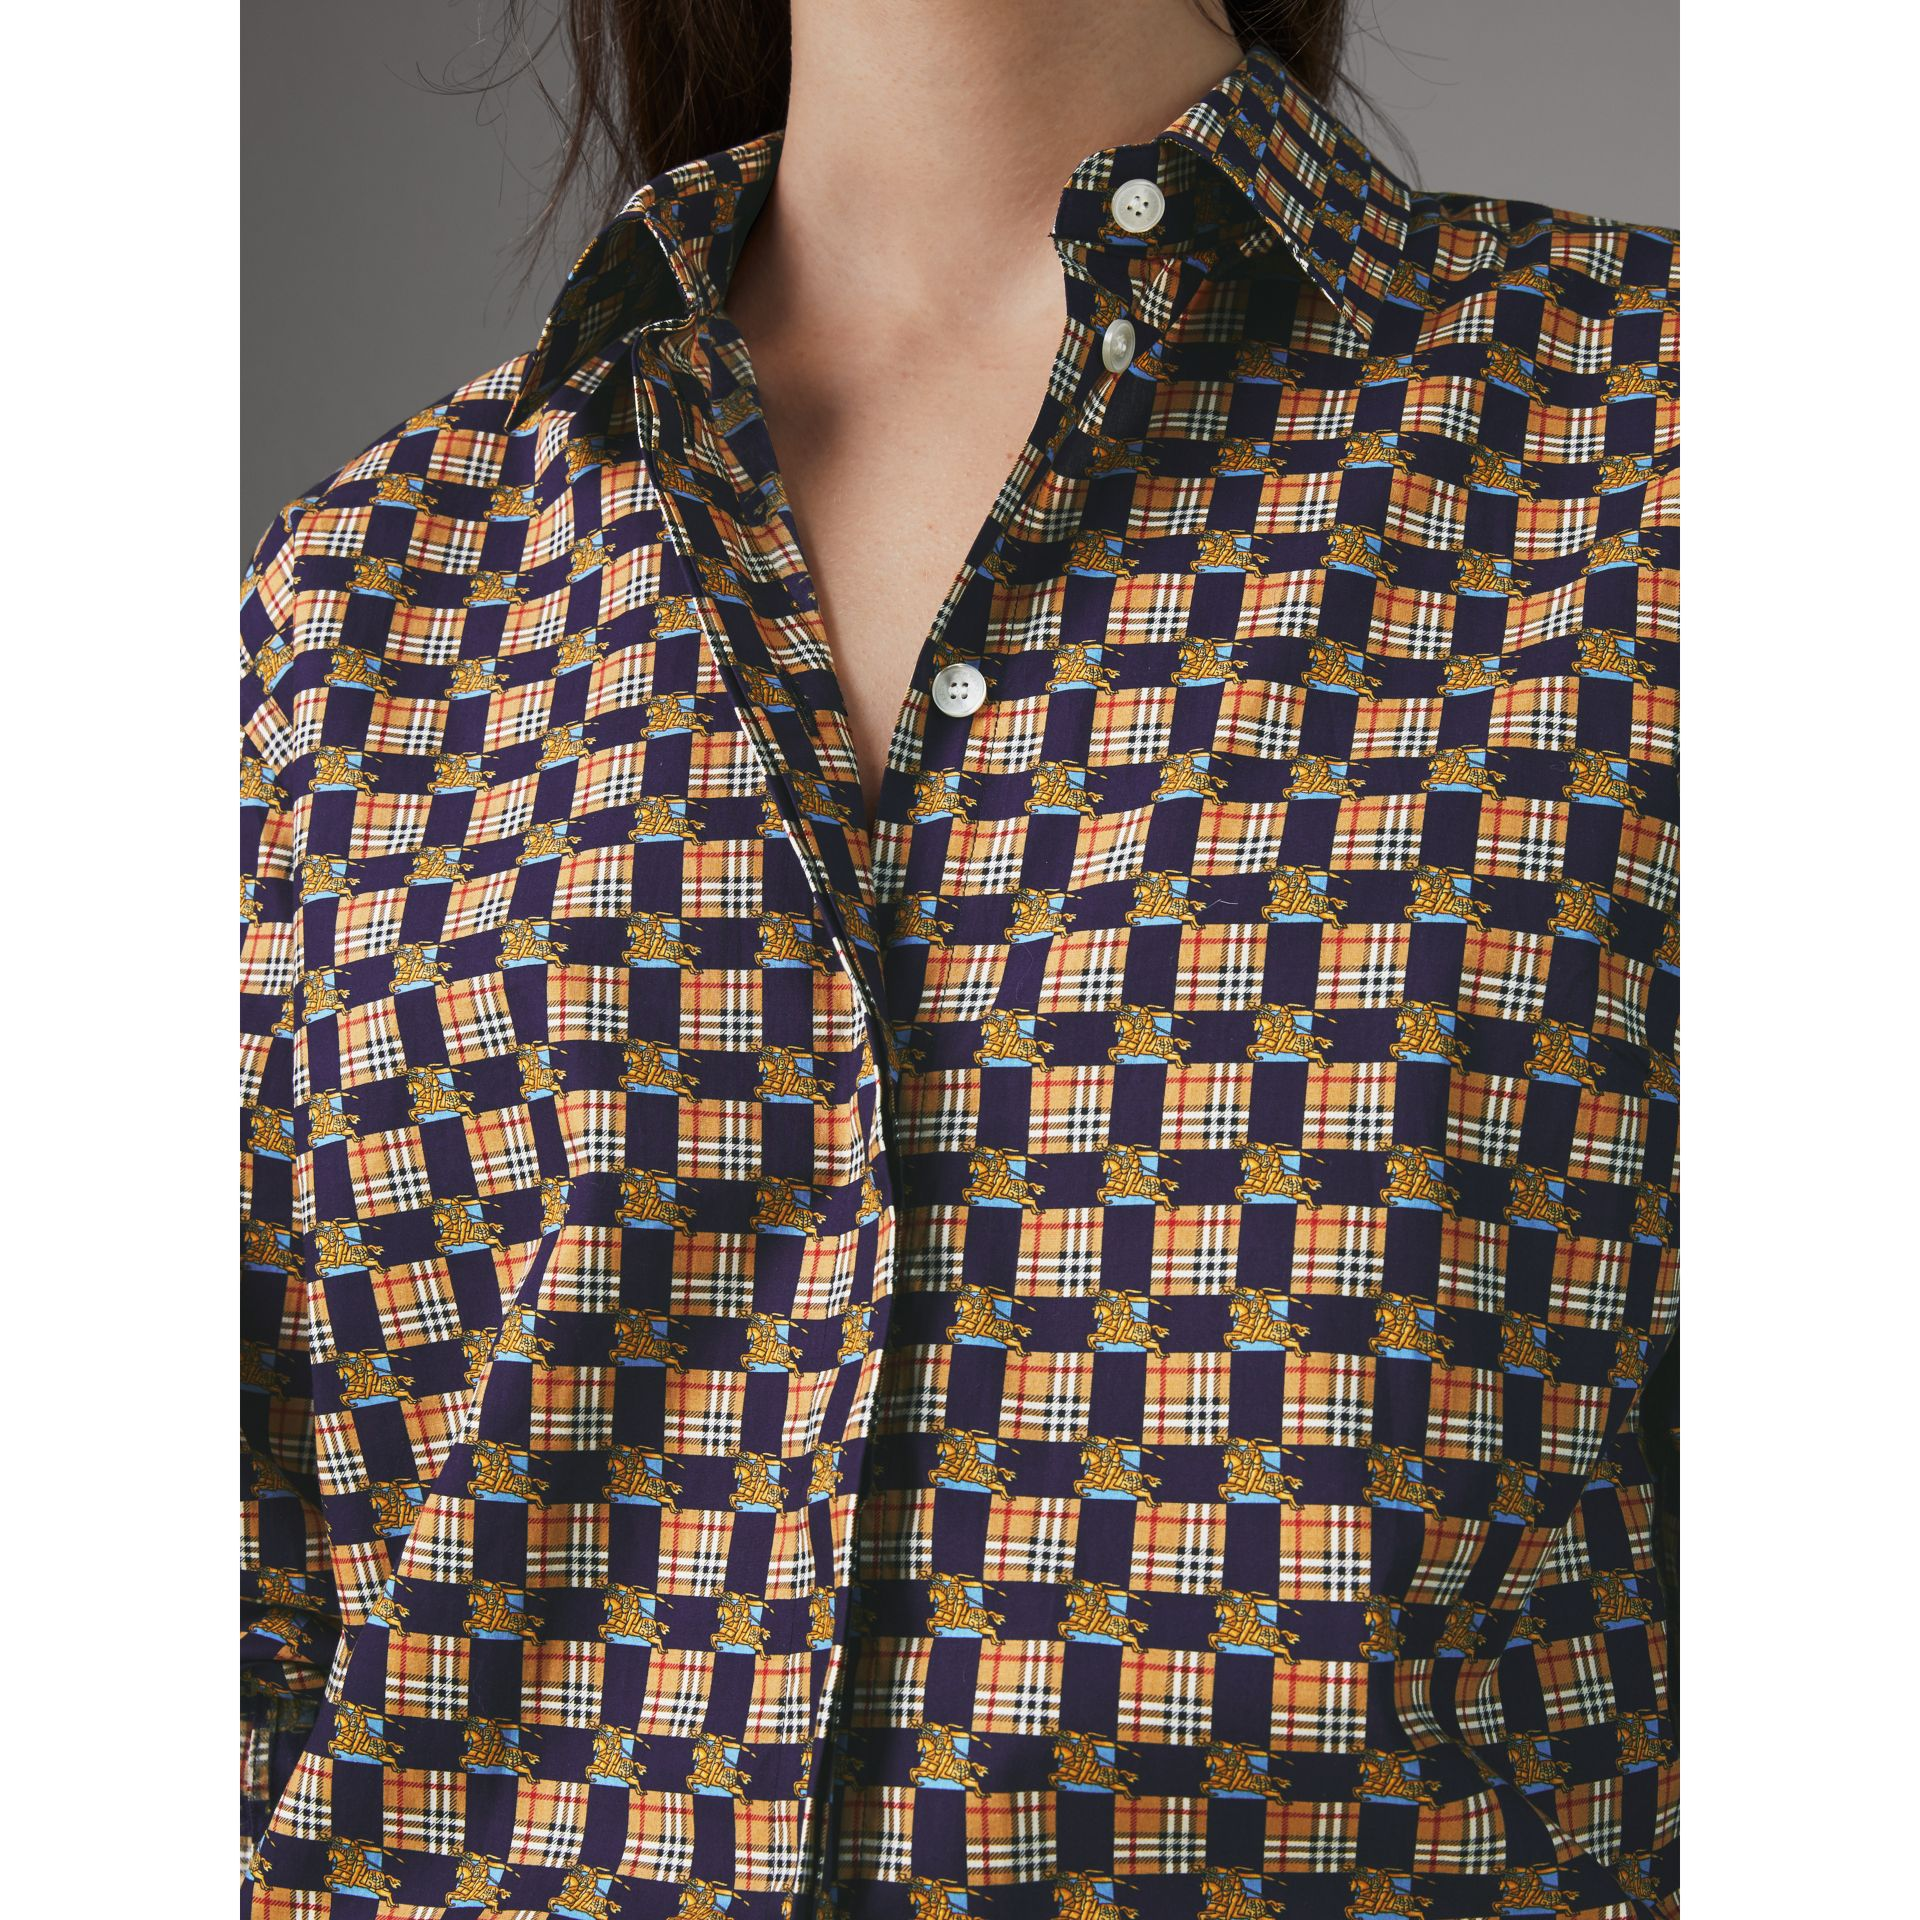 Tiled Archive Print Cotton Shirt in Navy - Women | Burberry - gallery image 1